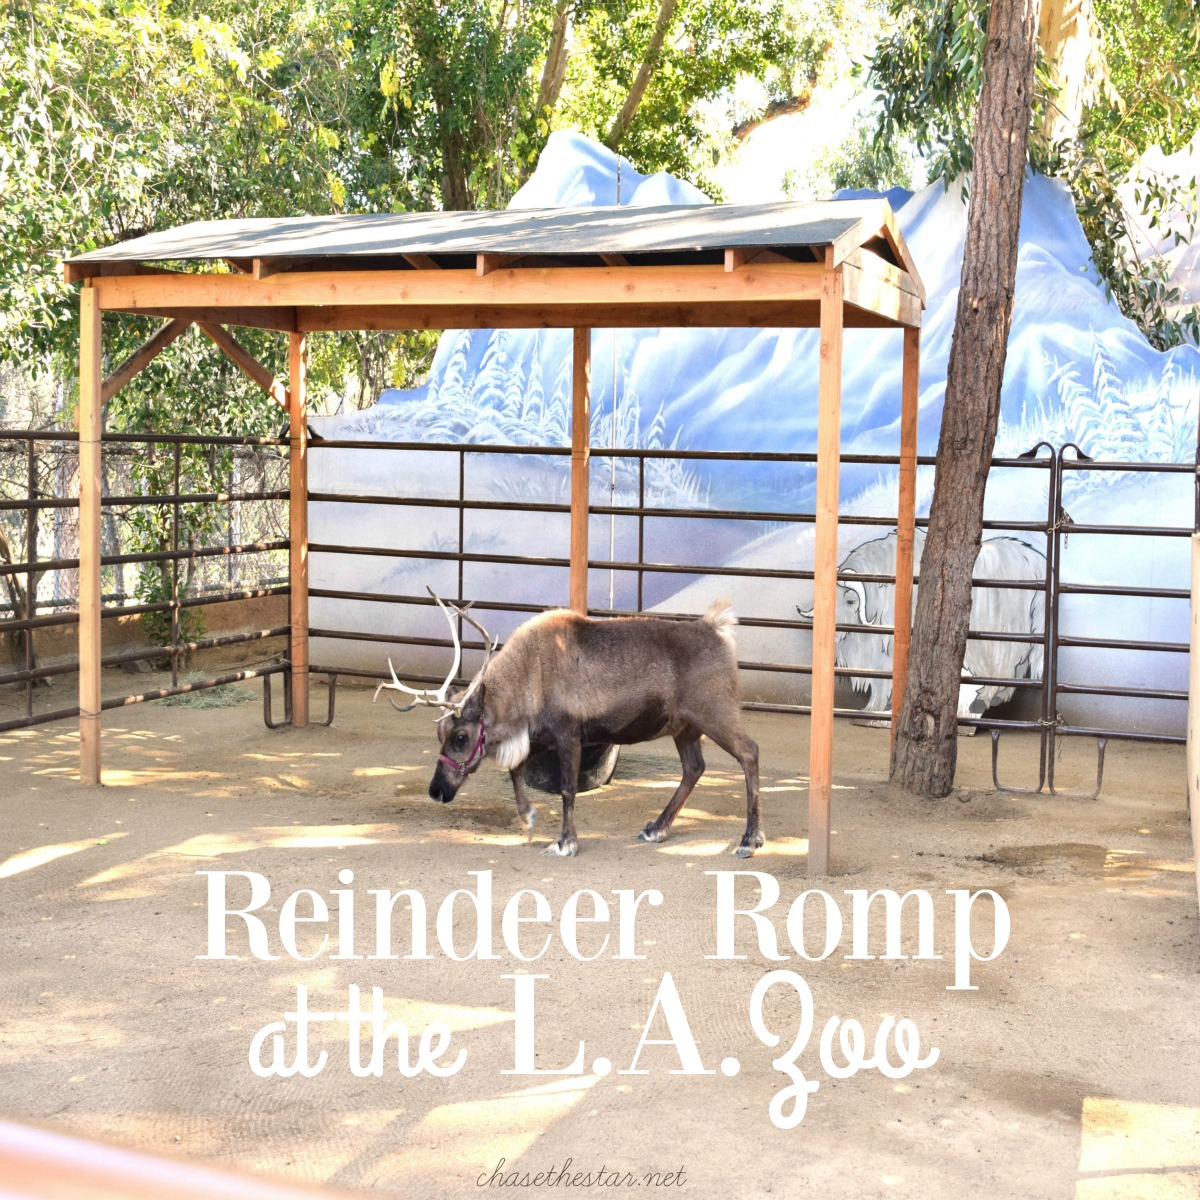 #ReindeerRompLA Celebrate the holidays at the zoo!